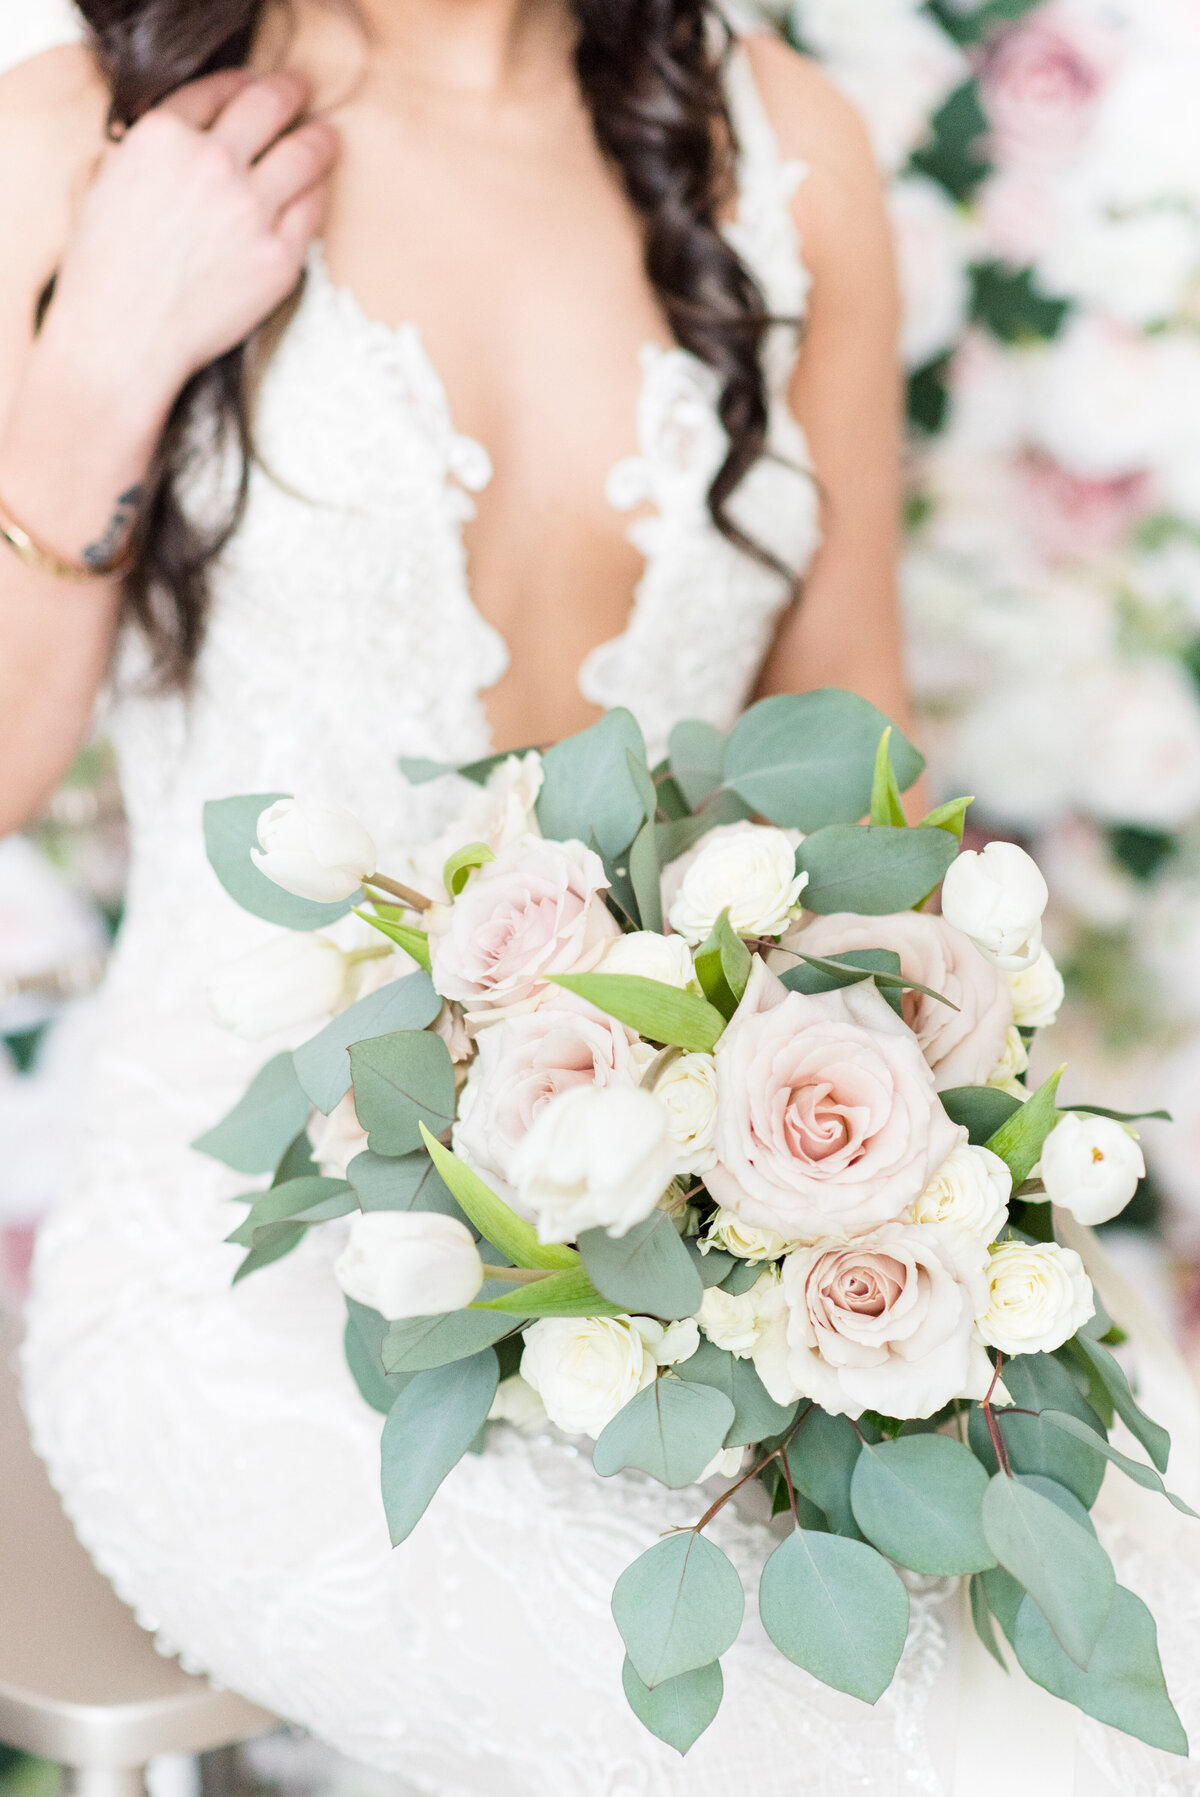 A beautiful bouquet of pink roses and white tulips by Thuja Floral Design rests on the lap of a bride sitting on the champagne chiavari chairs from Luxy Chair